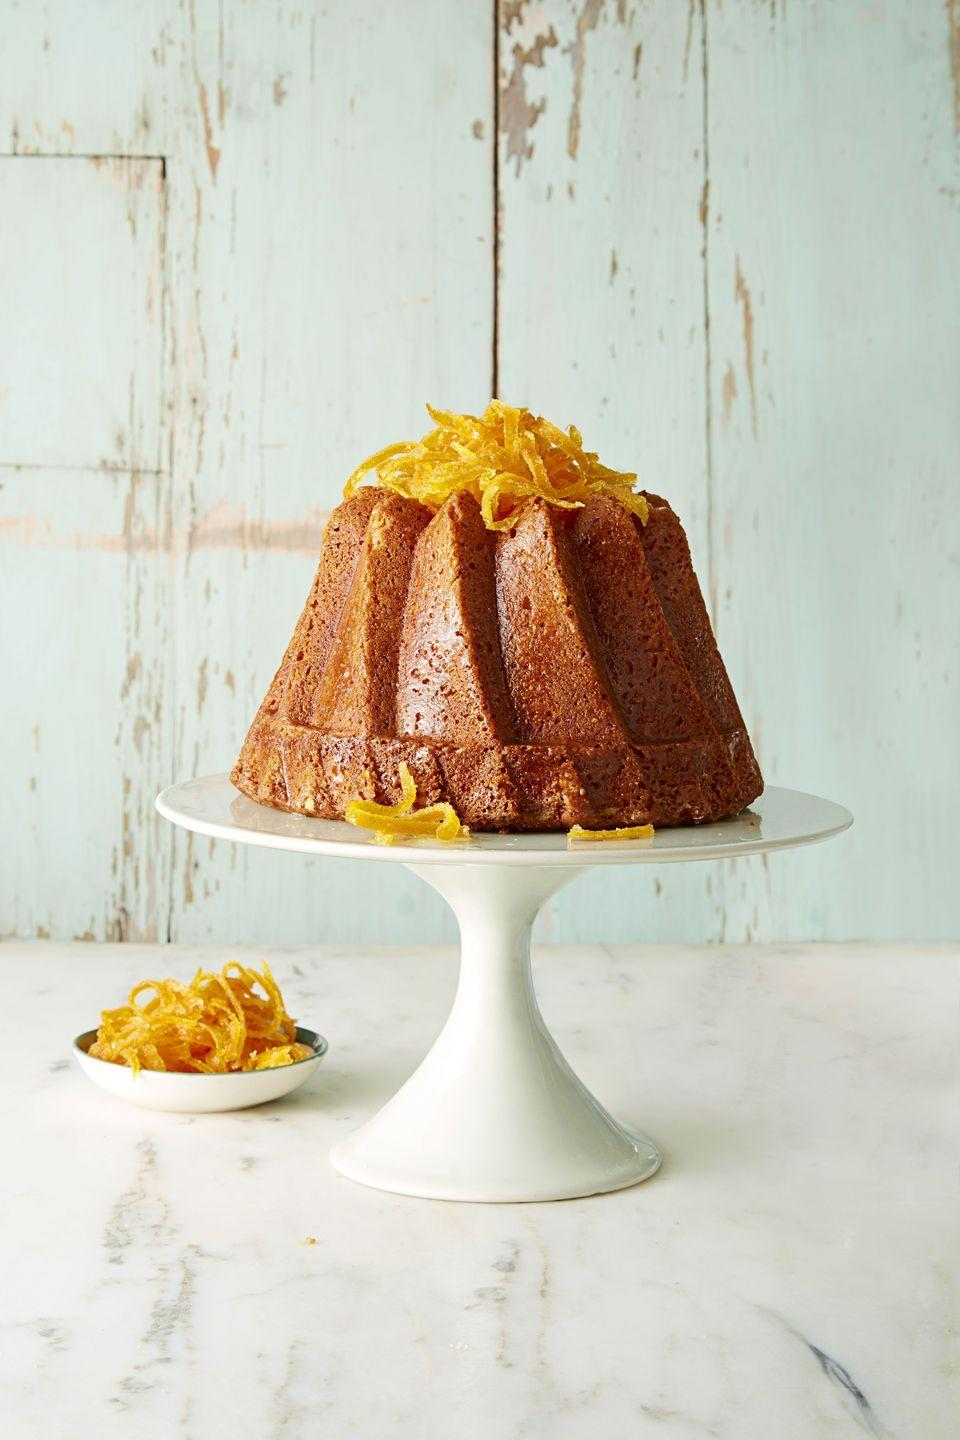 "<p>The bright orange, lemon, and lime flavors of this beautiful bundt pair perfectly with a batch of mimosas. <em>Hint, hint</em>.</p><p><em><a href=""https://www.goodhousekeeping.com/food-recipes/dessert/a38286/triple-citrus-bundt-recipe/"" rel=""nofollow noopener"" target=""_blank"" data-ylk=""slk:Get the recipe for Triple Citrus Bundt »"" class=""link rapid-noclick-resp"">Get the recipe for Triple Citrus Bundt »</a></em><br></p>"